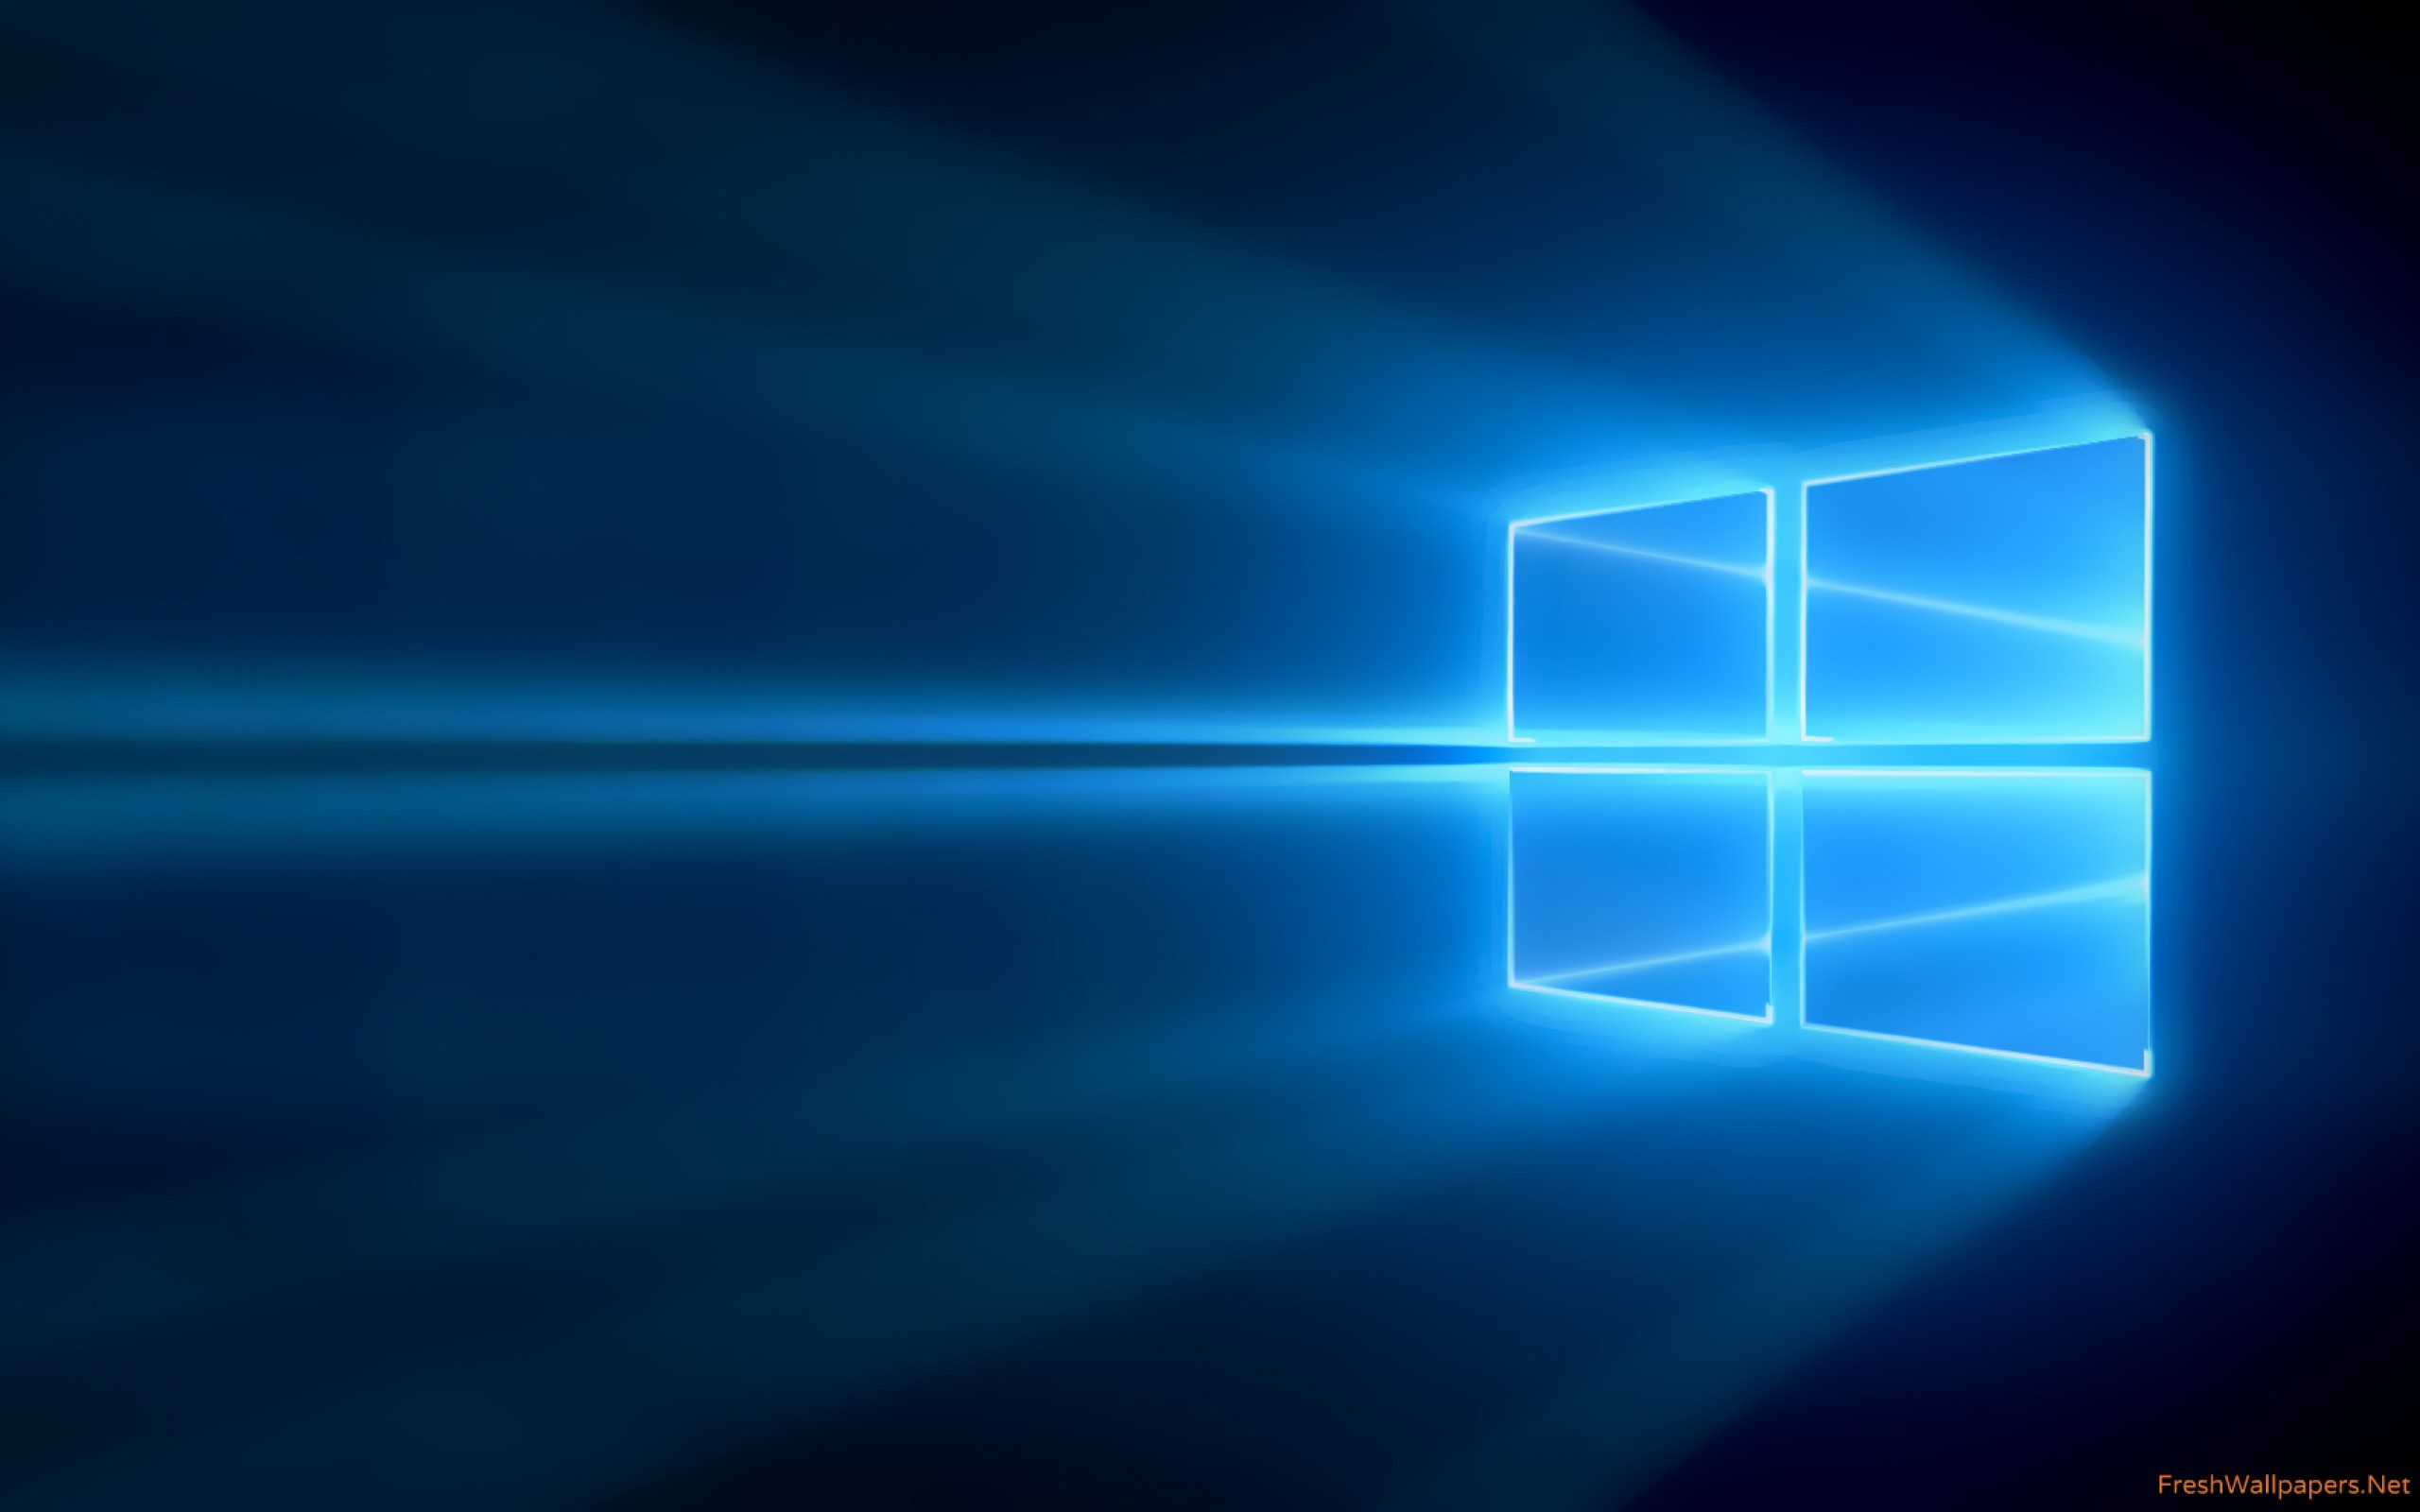 Wallpaper for Windows 10 Desktop 80 images